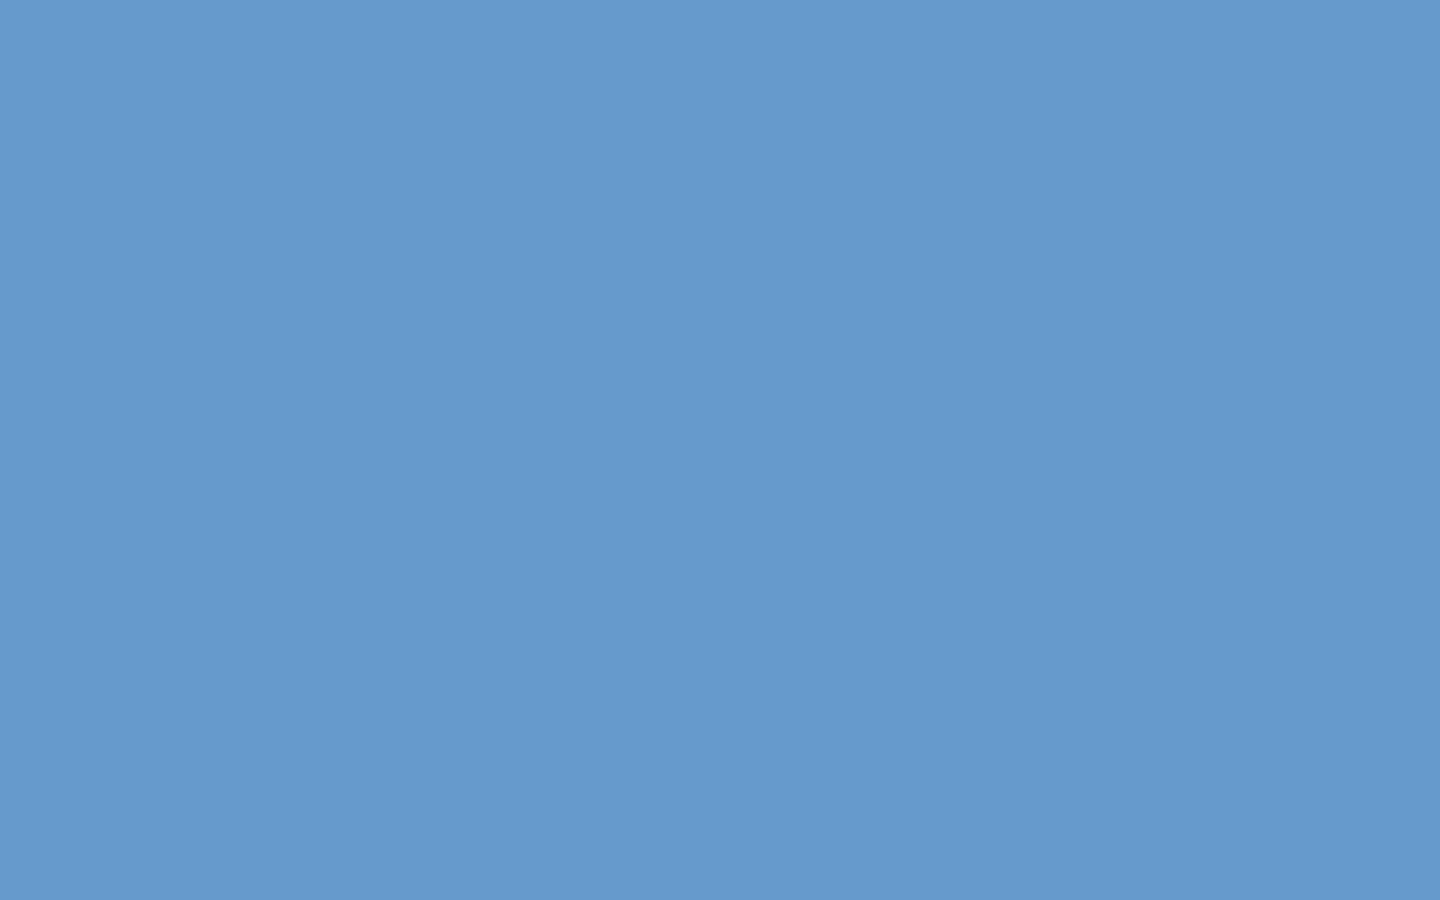 1440x900 Blue-gray Solid Color Background